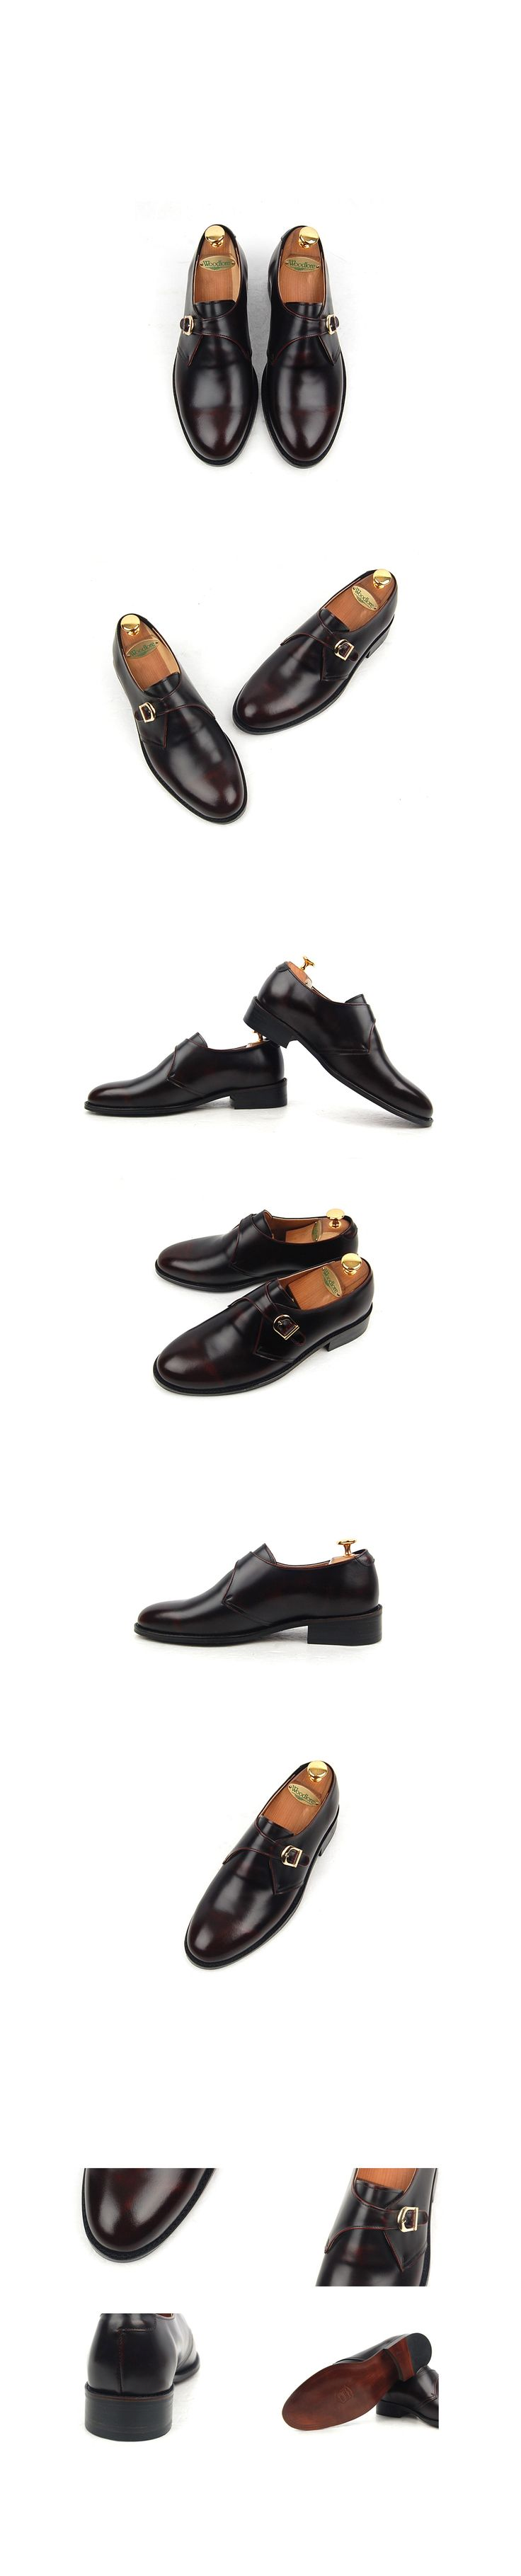 H3THECLASSIC loafer shoes man fashion #h3theclassicl#handmadeshoes#shoes#madeinkorea#instashoes#classic#menshoes#oxford#h3theclassic#fashion#custom#handmade#mensshoes#instashoe#손신발#에이치쓰리더클래식#수제화#남성수제화#남자수제화#커스텀#남자구두#핸드메이드#신스타그램#맞춤#클리퍼#남성클리퍼#남자로퍼#맞춤클리퍼#fashionaddict#dailystyle#instafashion#ootd#ootdmagazine#lookbook#streetchic#데일리룩#OX-2054PUA www.h3theclassic.com